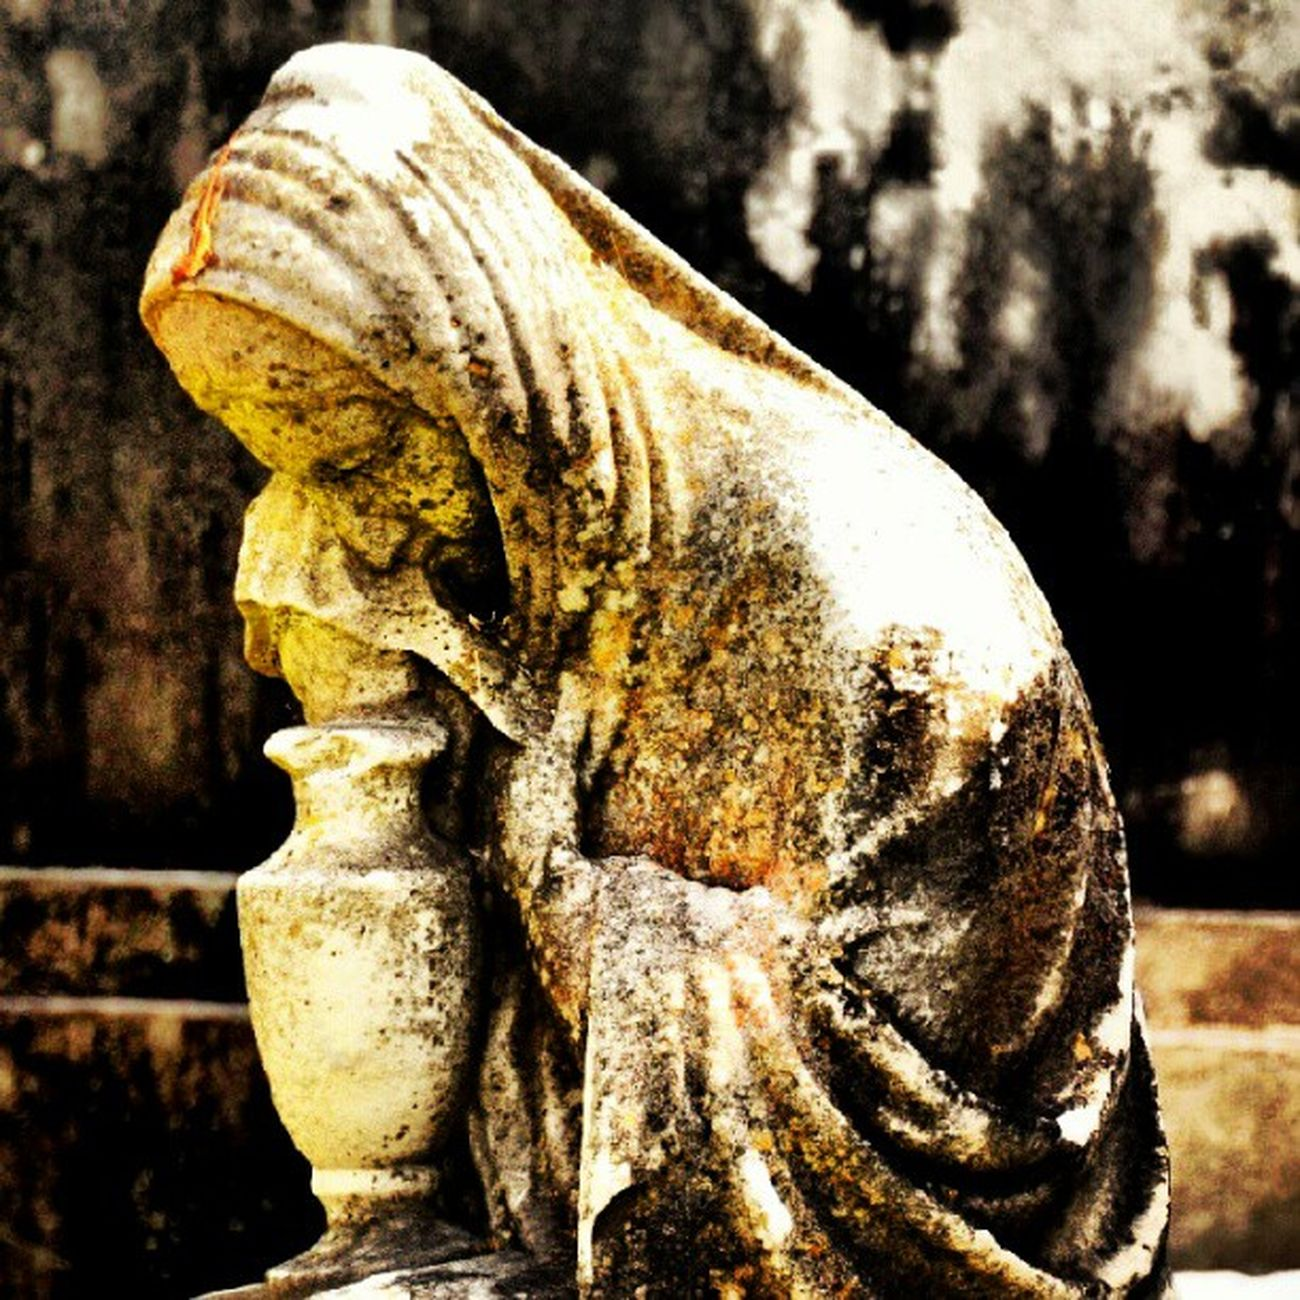 #grave #cemetery #grief #sculpture #tombstone #tomb #masonry #nola #neworleans #picoftheday #pictureoftheday #stone #saveourcemeteries #weeping Tomb Pictureoftheday Neworleans Saveourcemeteries Masonry Weeping Stone Sculpture Cemetery Grief Tombstone Picoftheday Grave NOLA